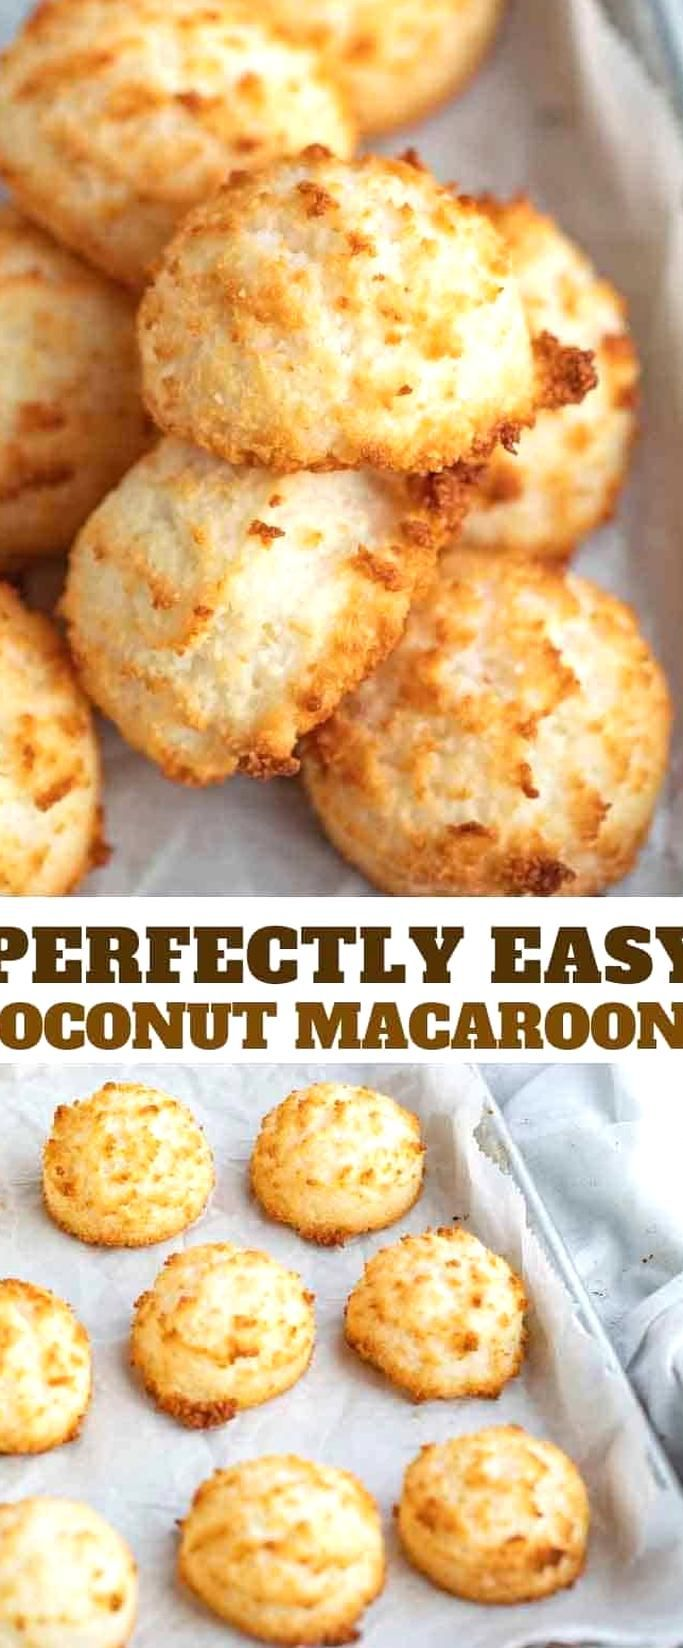 Coconut Macaroons Are Sweet And Chewy Made From Coconut Flakes Sweetened Condensed Milk Almo In 2020 Coconut Cookies Recipes Coconut Macaroons Recipe Coconut Macaroons